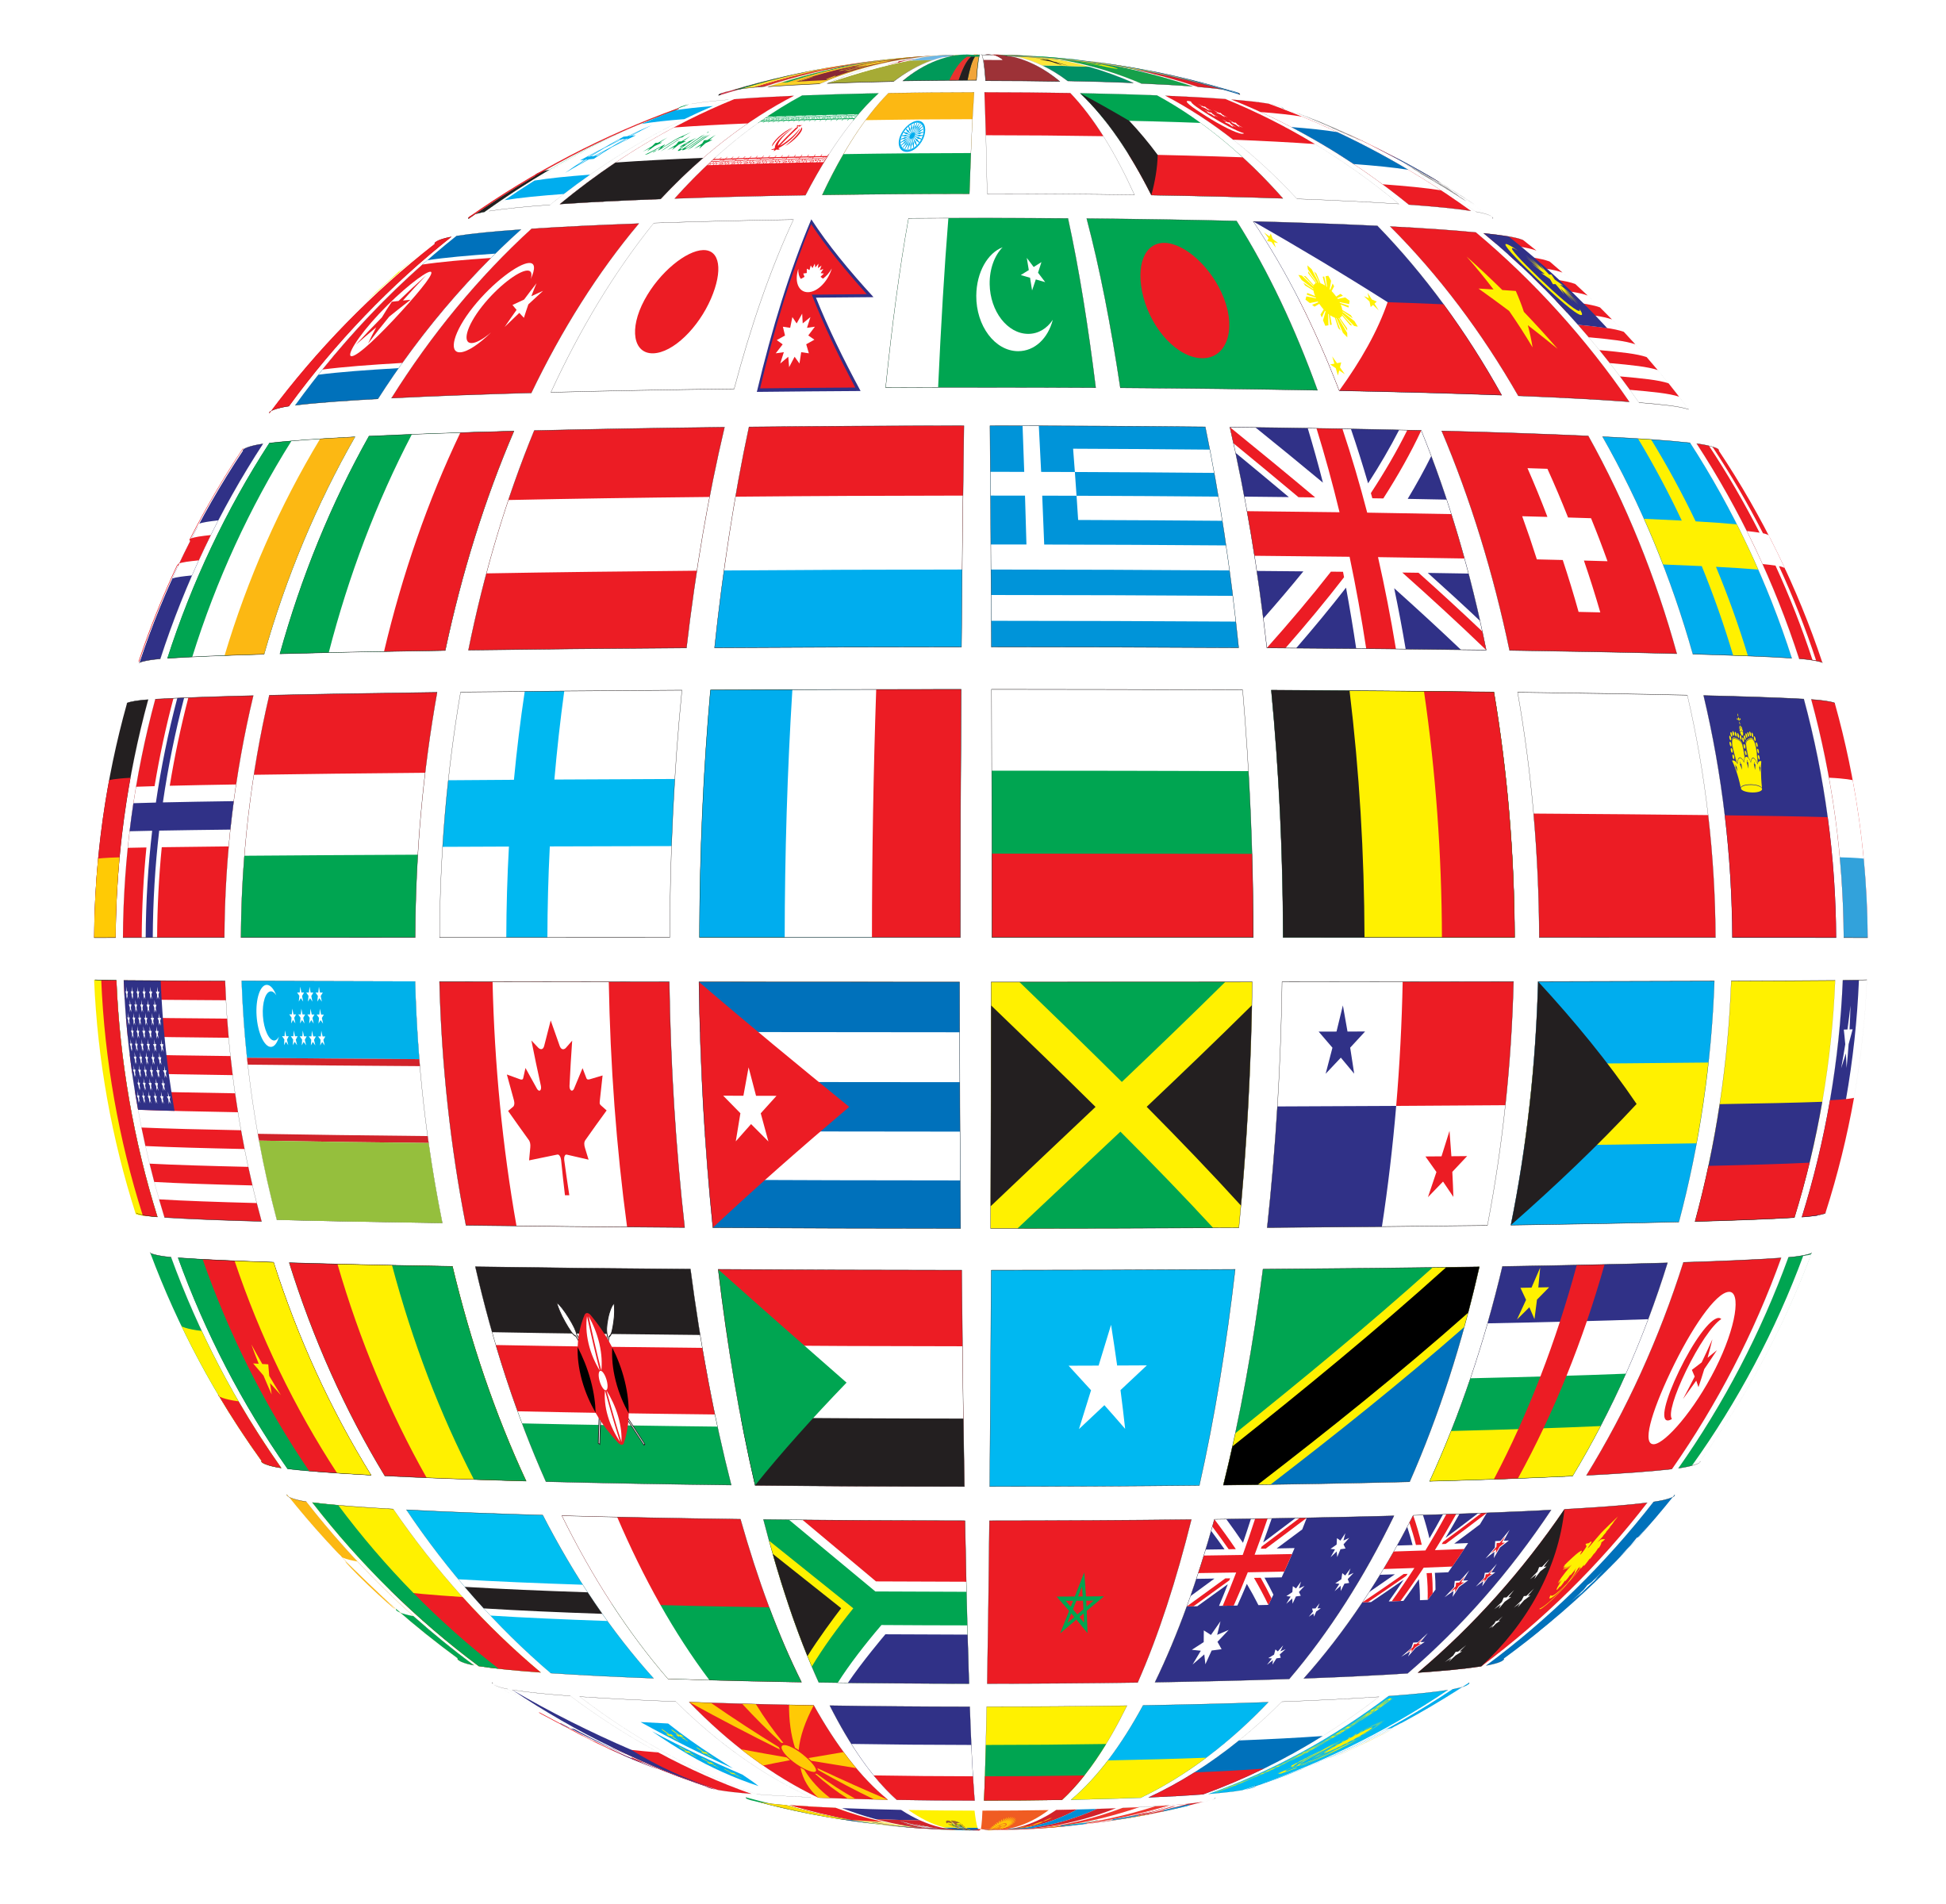 Apple globe world map clipart graphic black and white library World Flags Globe by @GDJ, Flags of the world mapped onto a globe ... graphic black and white library